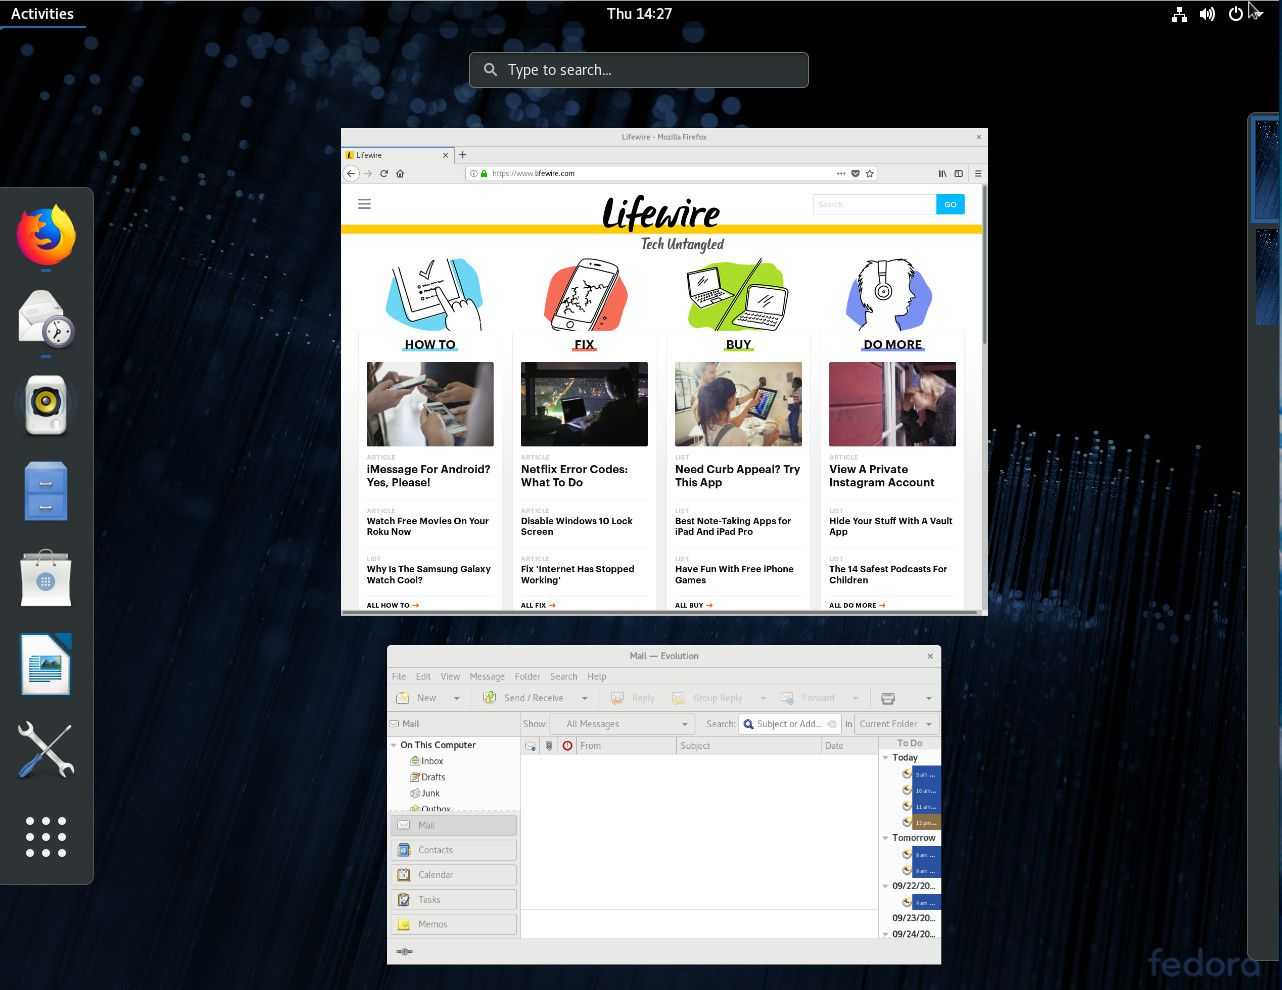 A screenshot showing the GNOME activities overview.